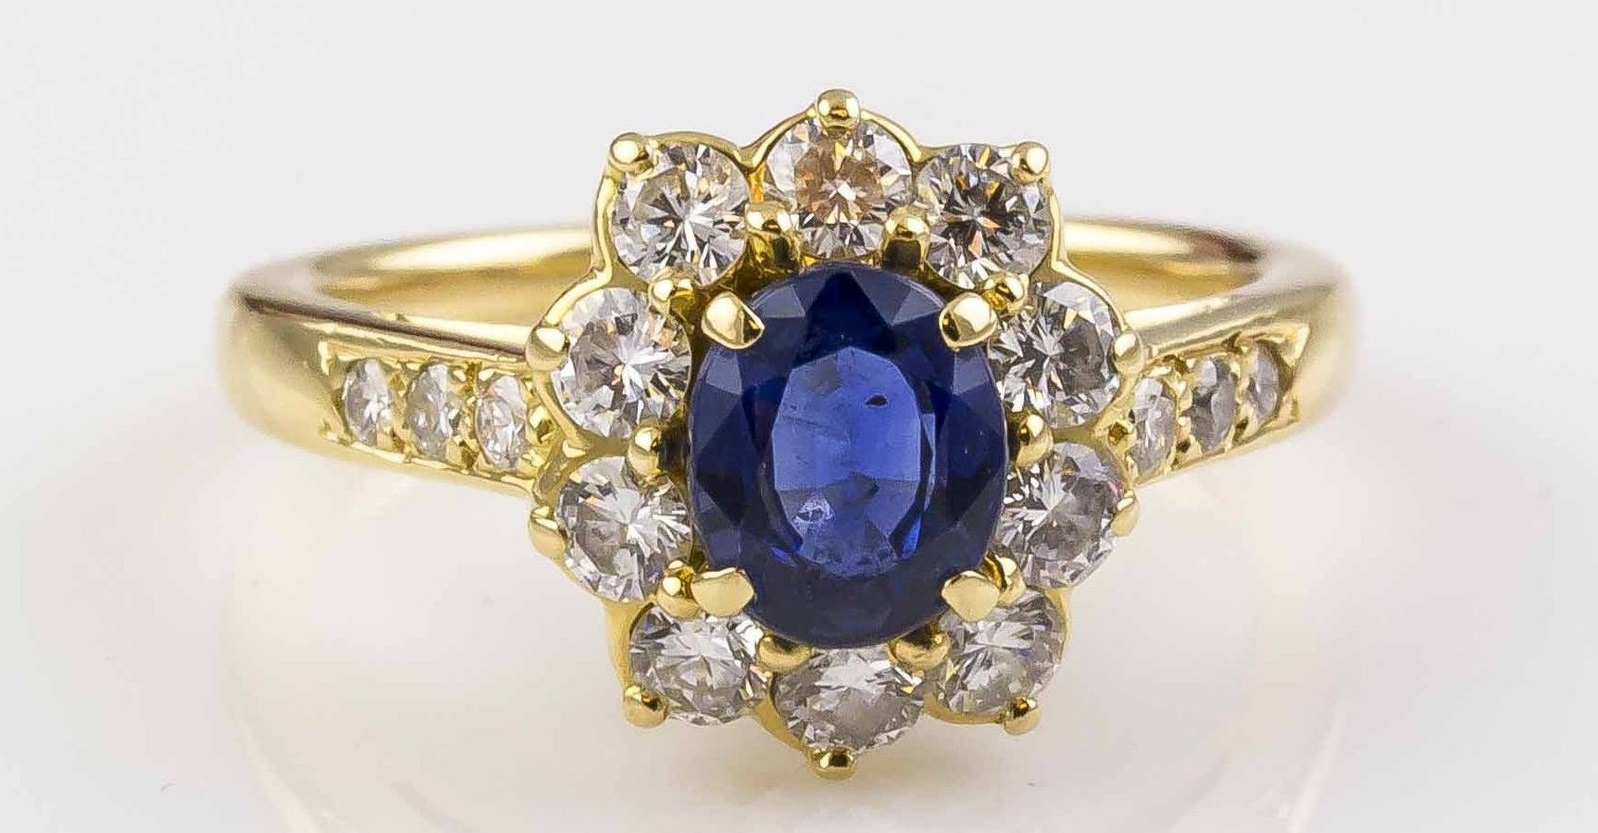 Charming and elegant 18K yellow gold, sapphire and diamond cocktail ring by Cartier.